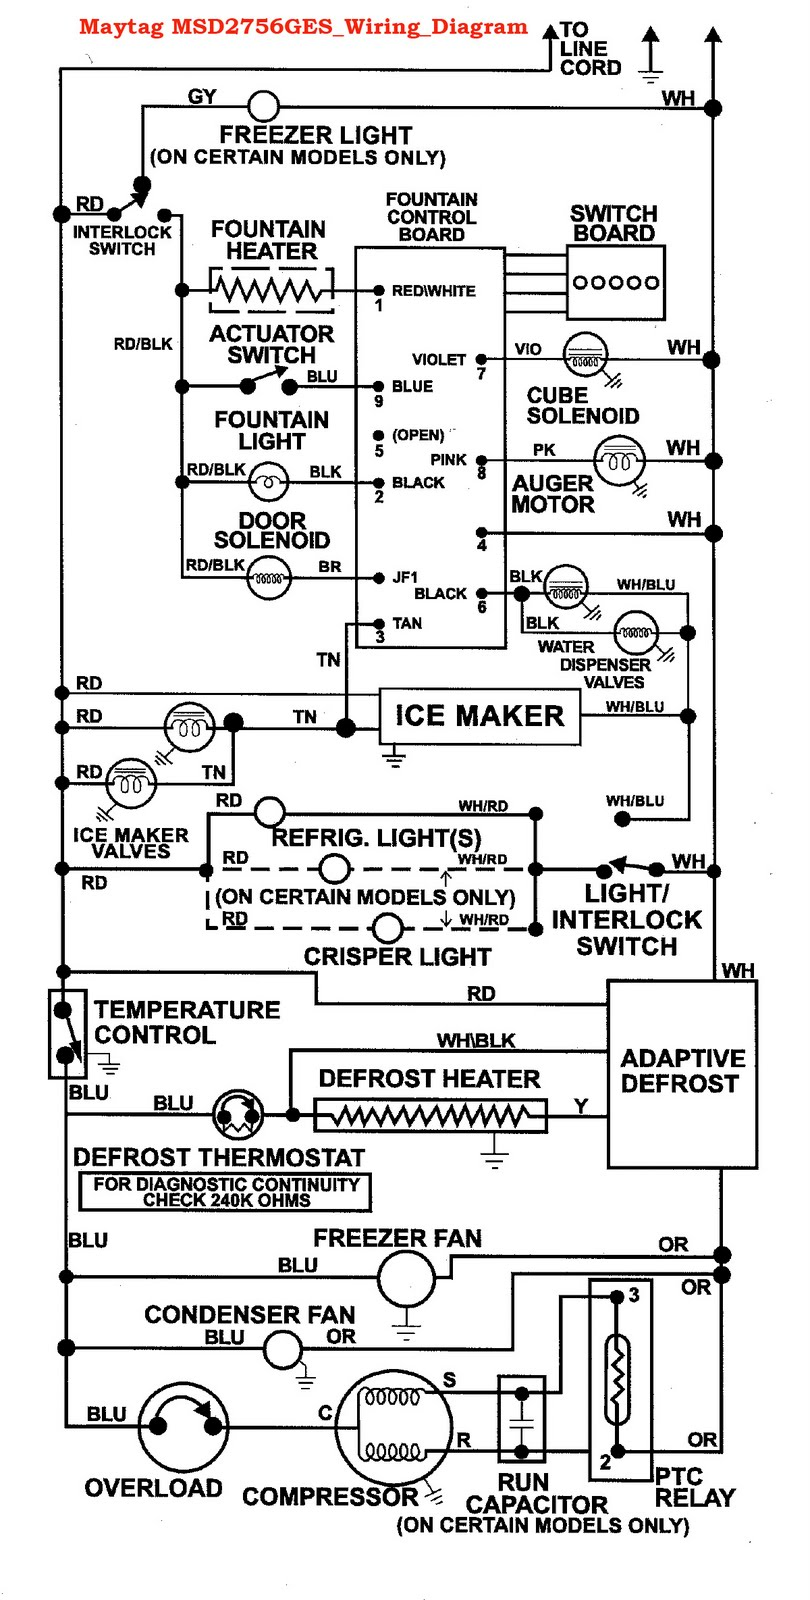 small resolution of maytag refrigerator wiring diagram simple wiring diagram rh 26 mara cujas de dryer wiring maytag dryer